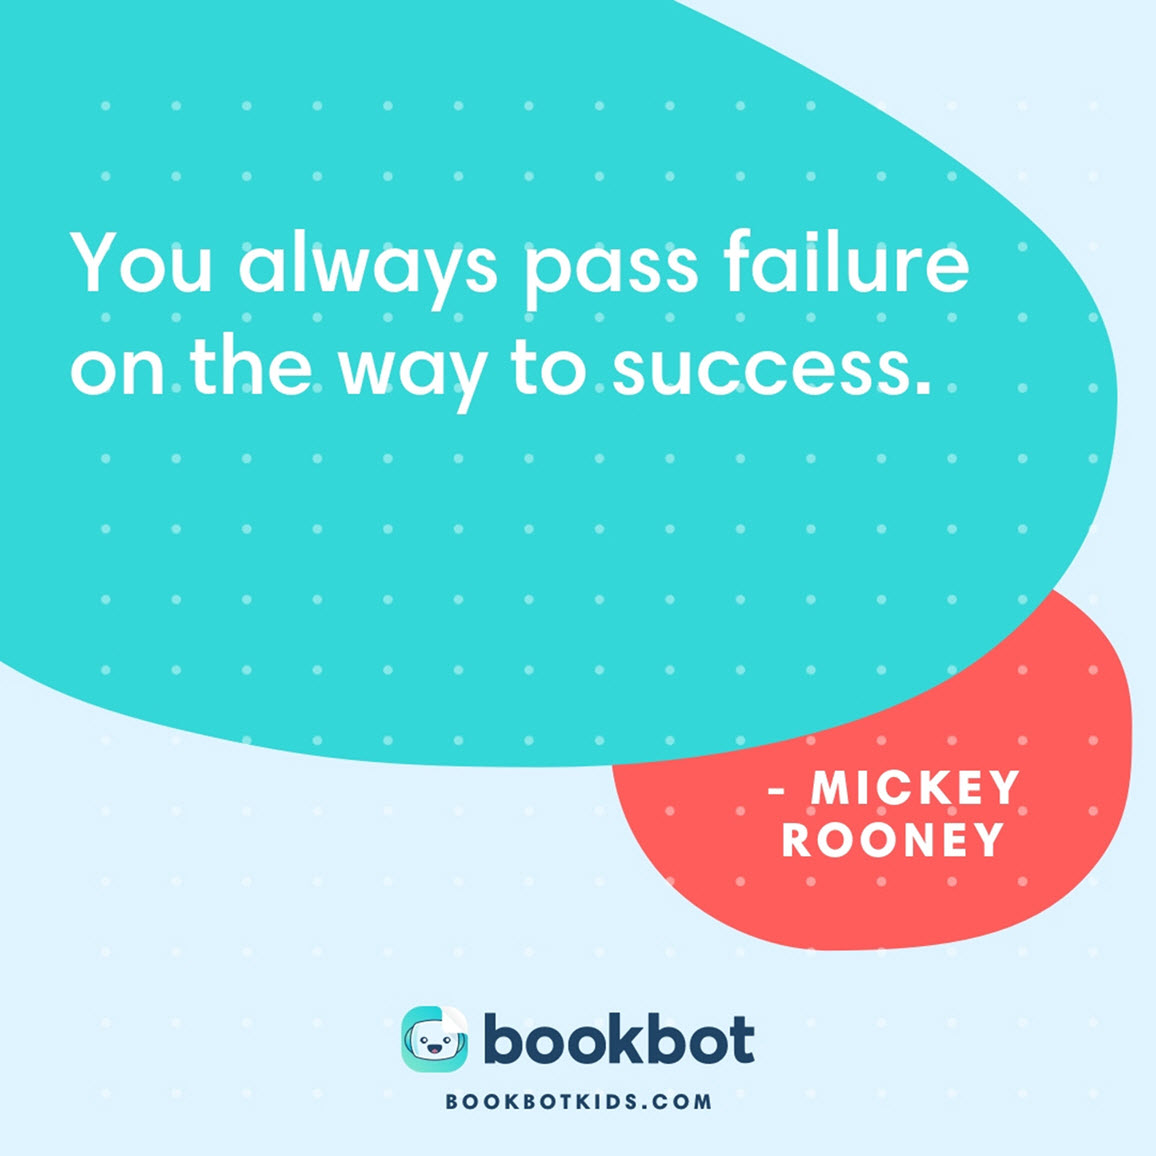 You always pass failure on the way to success. – Mickey Rooney